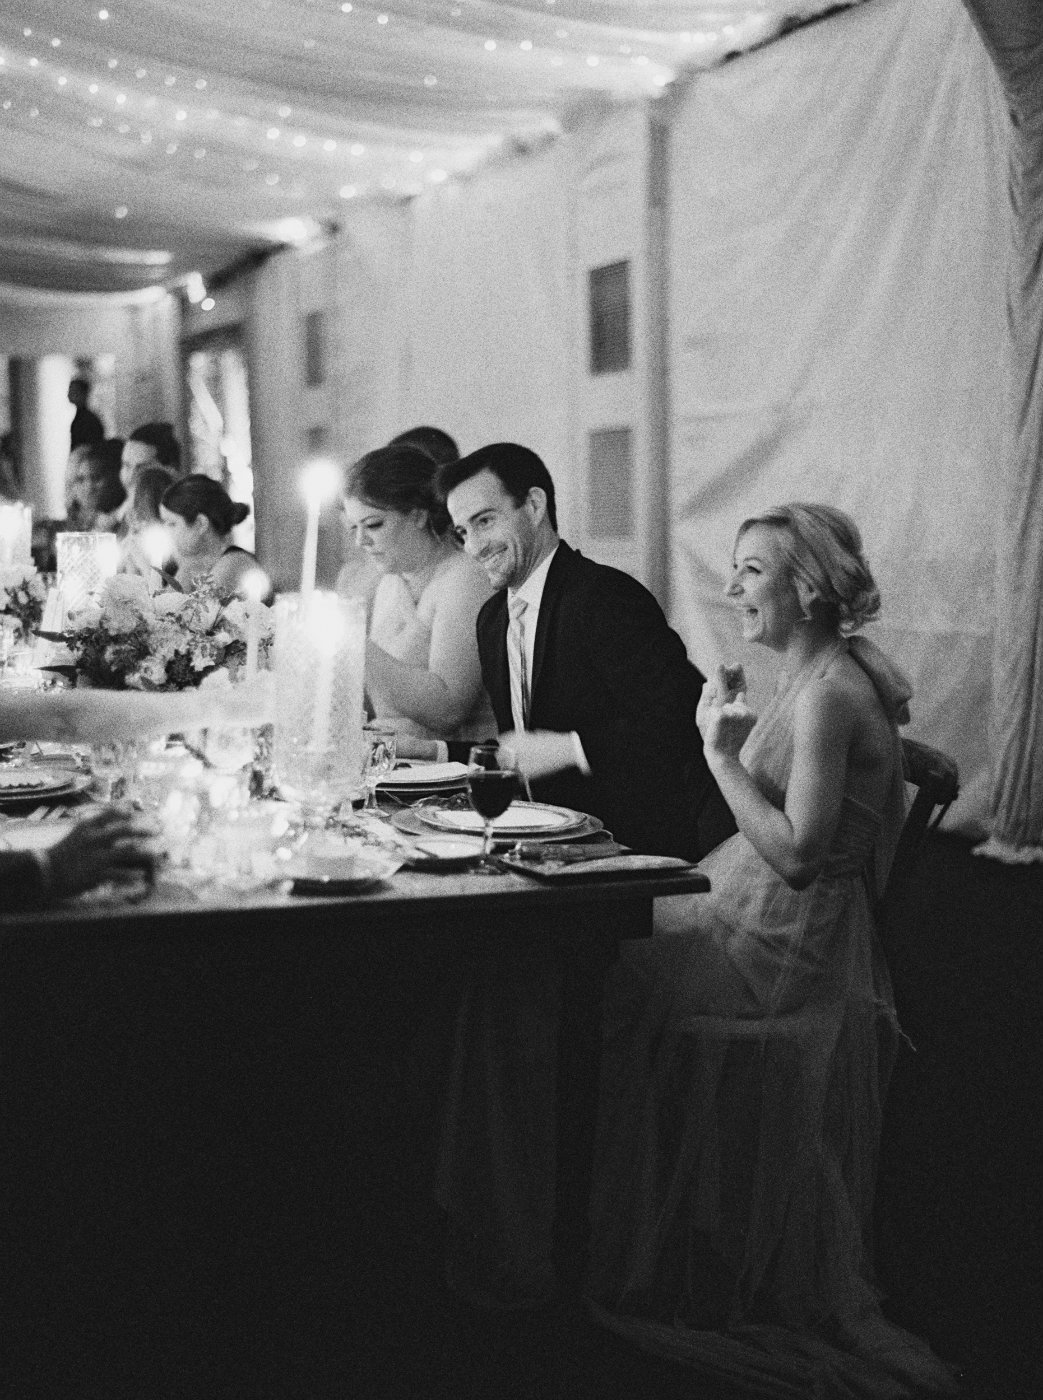 paige_wedding_melanie_gabrielle_photography_186